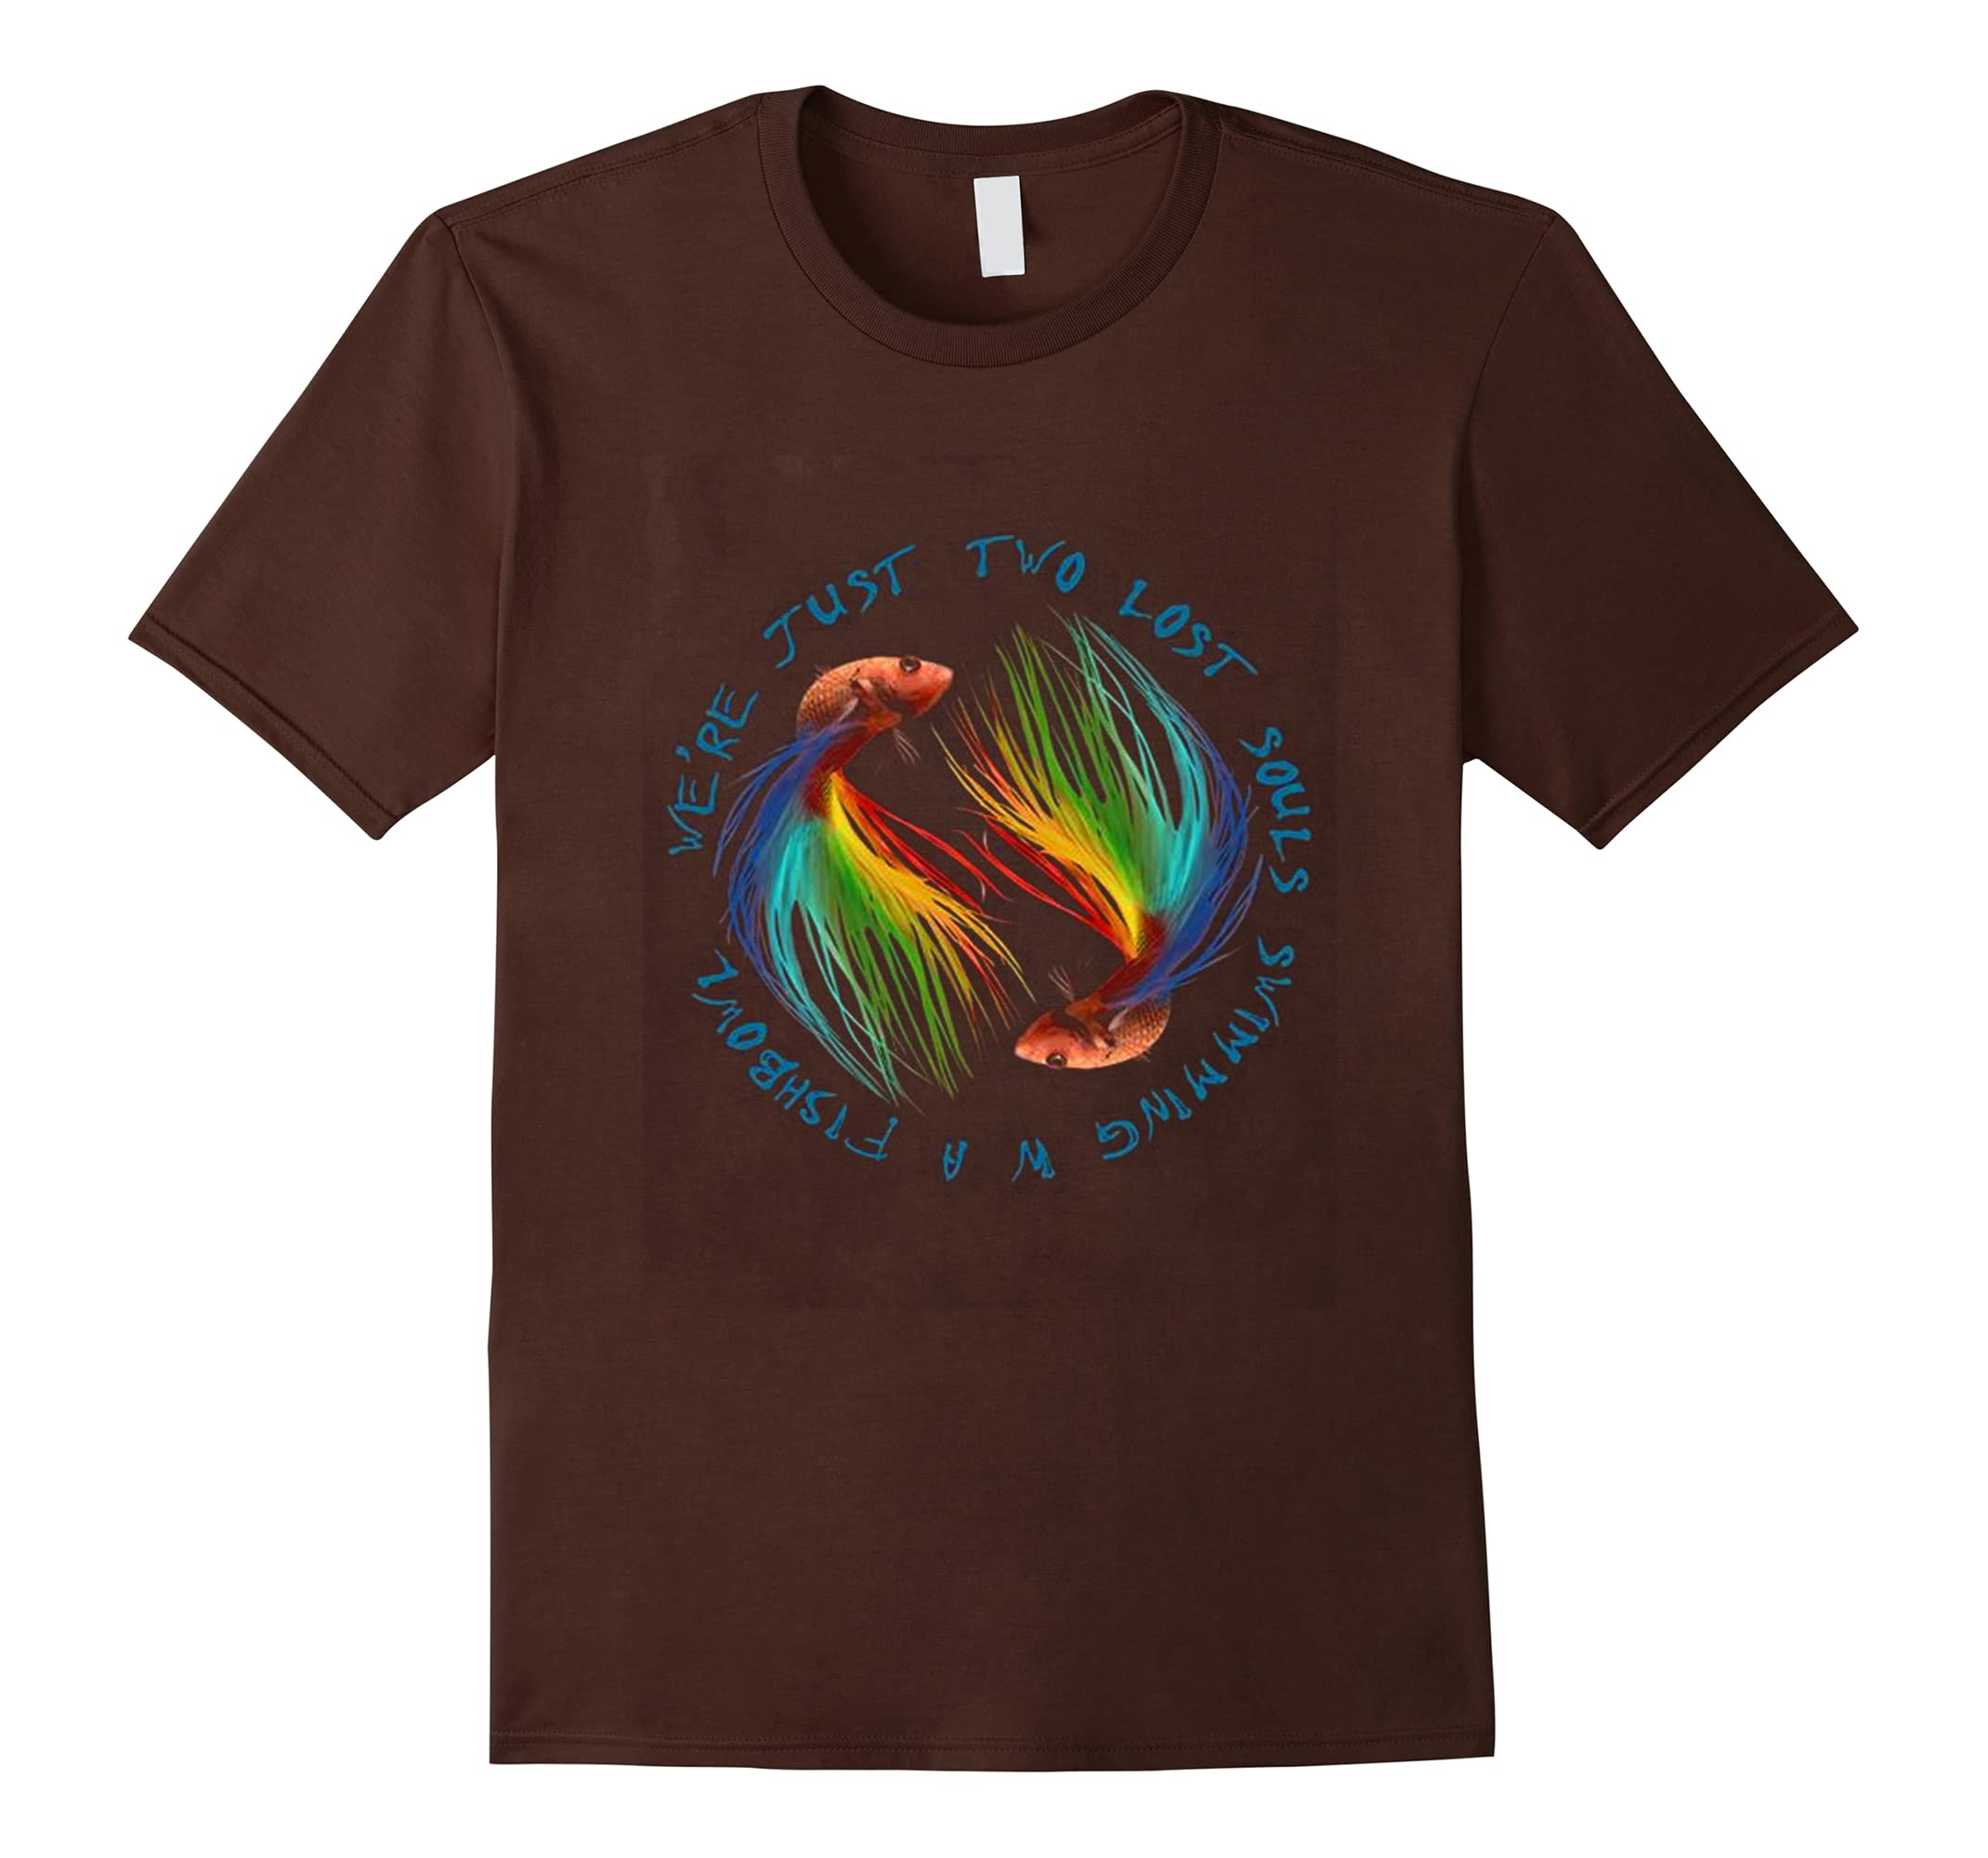 We Just Two Lost Souls Swimming In A Fishbowl Shirt-RT